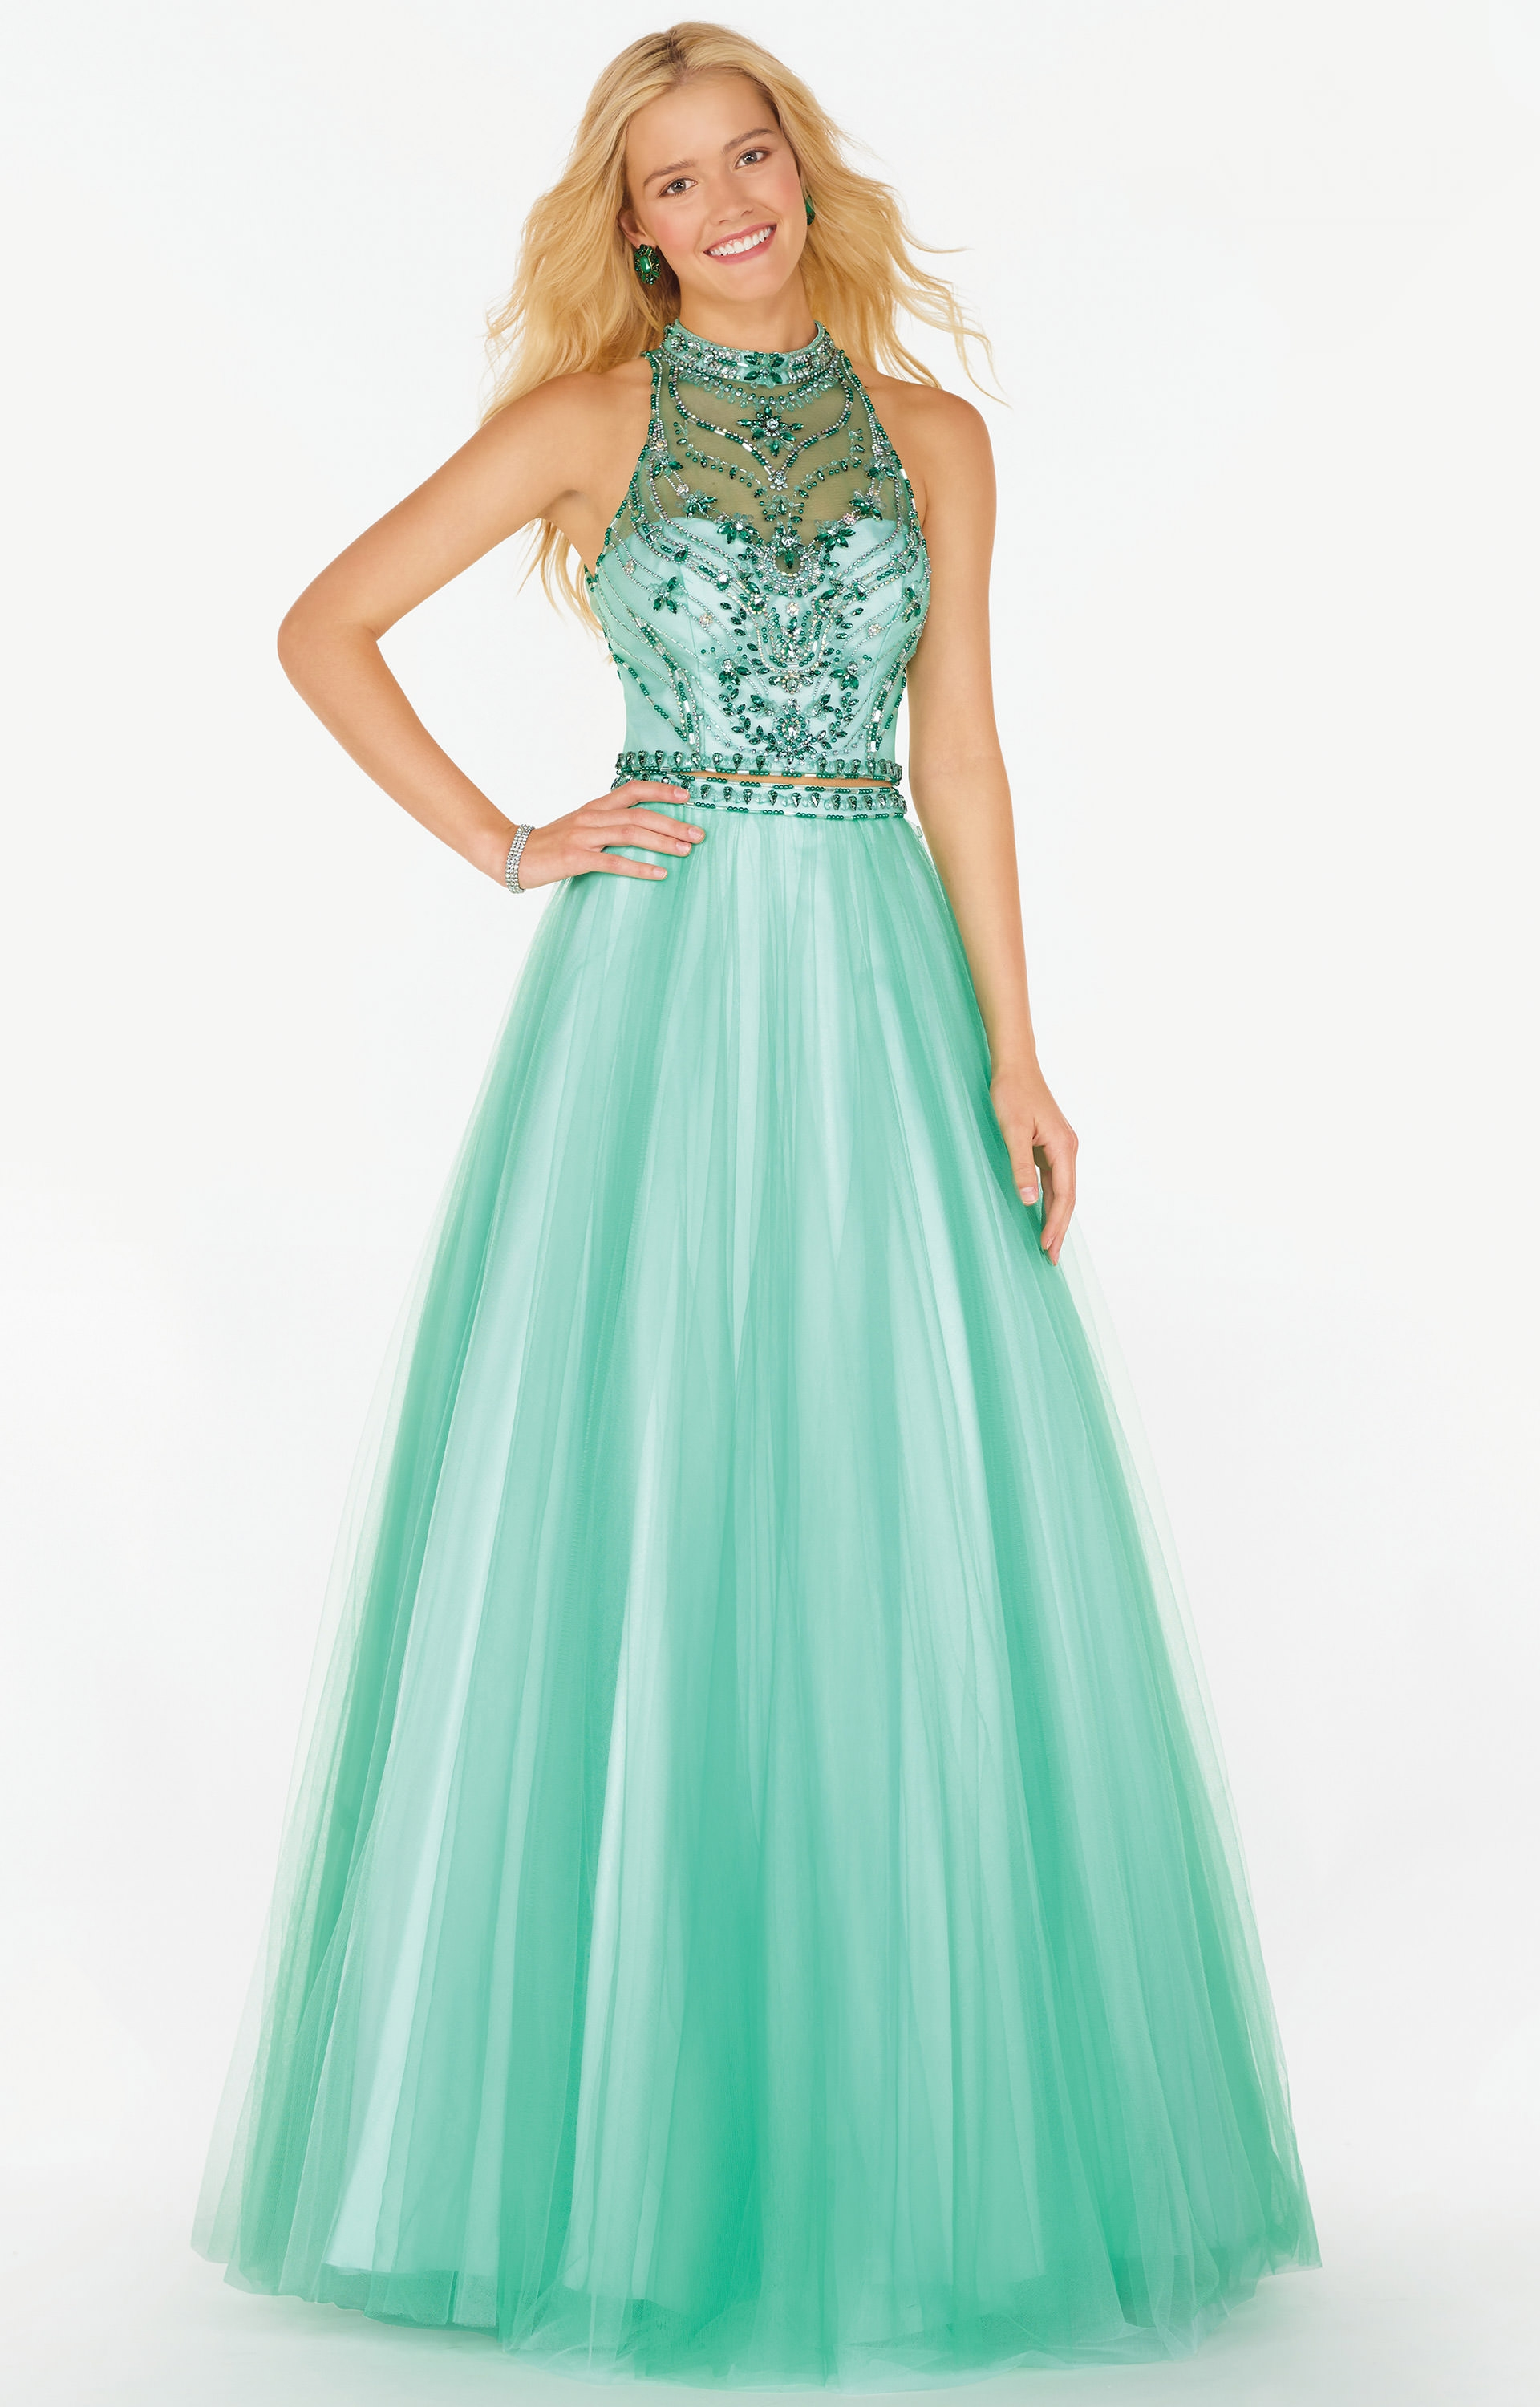 Alyce Paris 6766 - Sleeveless Two-Piece Tulle Ball Gown with Open ...